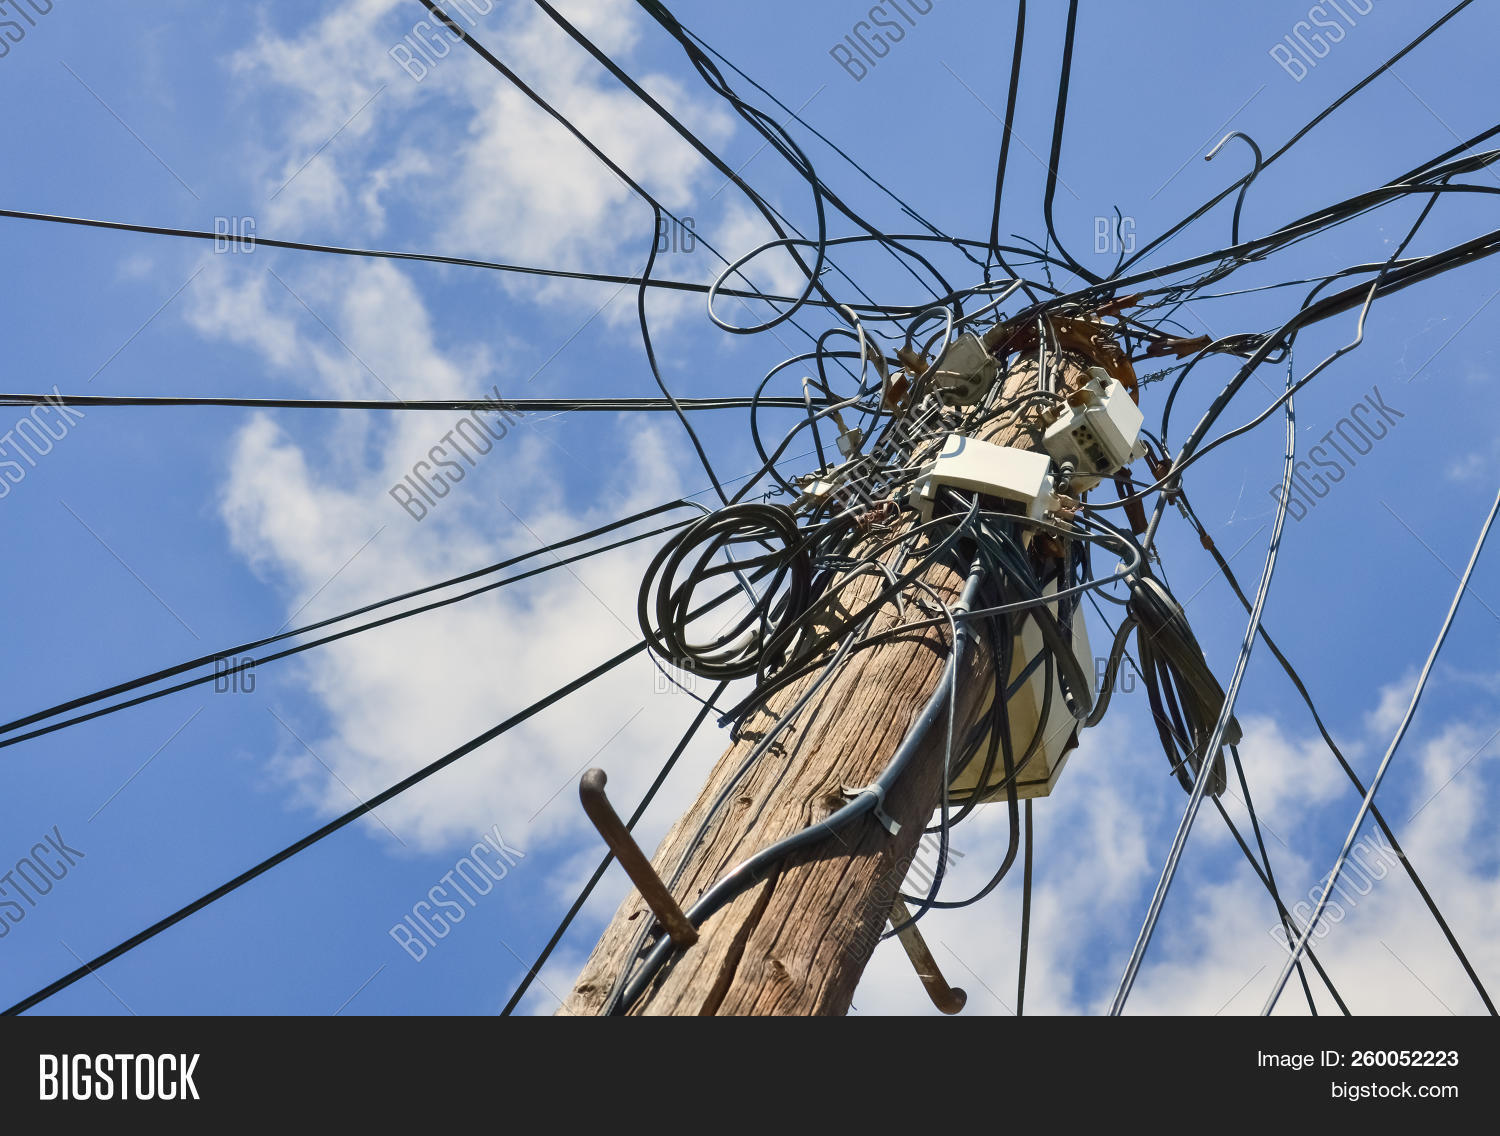 Dangerous Mess Image Photo Free Trial Bigstock Electrical Wiring Of Electric Cables With The Sky In Background